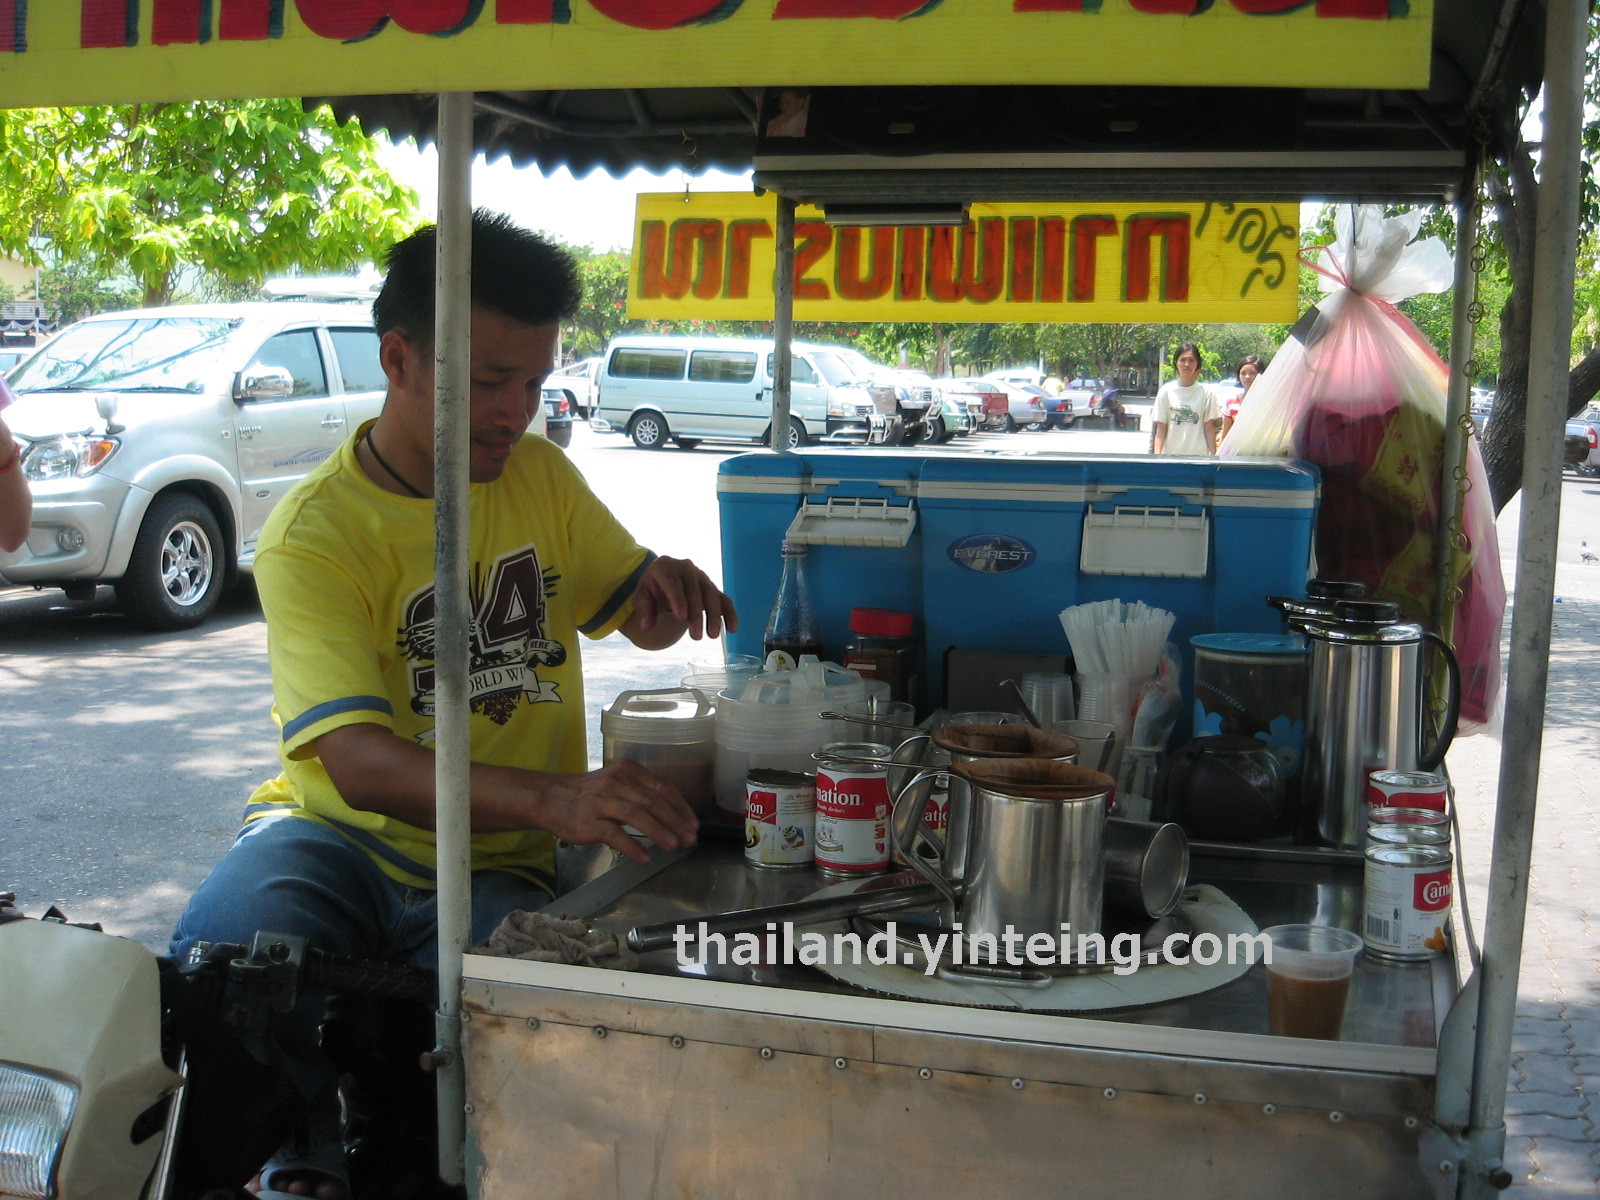 Buying coffee from roadside peddler in Thailand